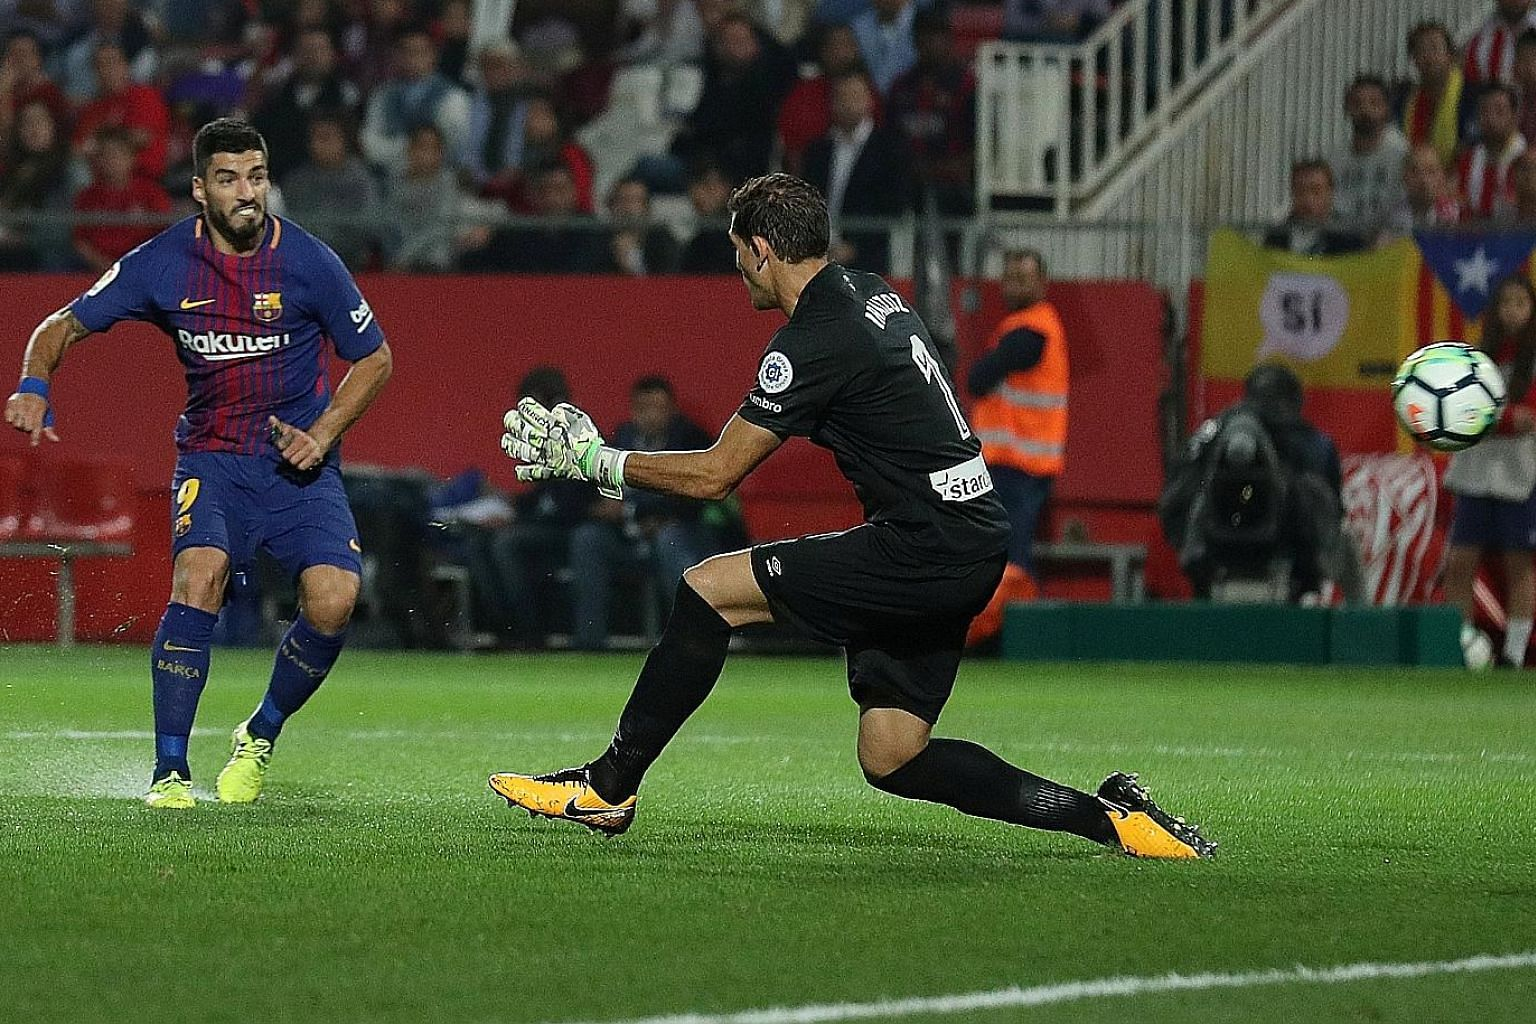 Barcelona striker Luis Suarez firing past Girona goalkeeper Gorka Iraizoz for his side's third and final goal. The Uruguayan international has plundered 87 goals in his 100 Spanish LaLiga games for the Catalan giants.